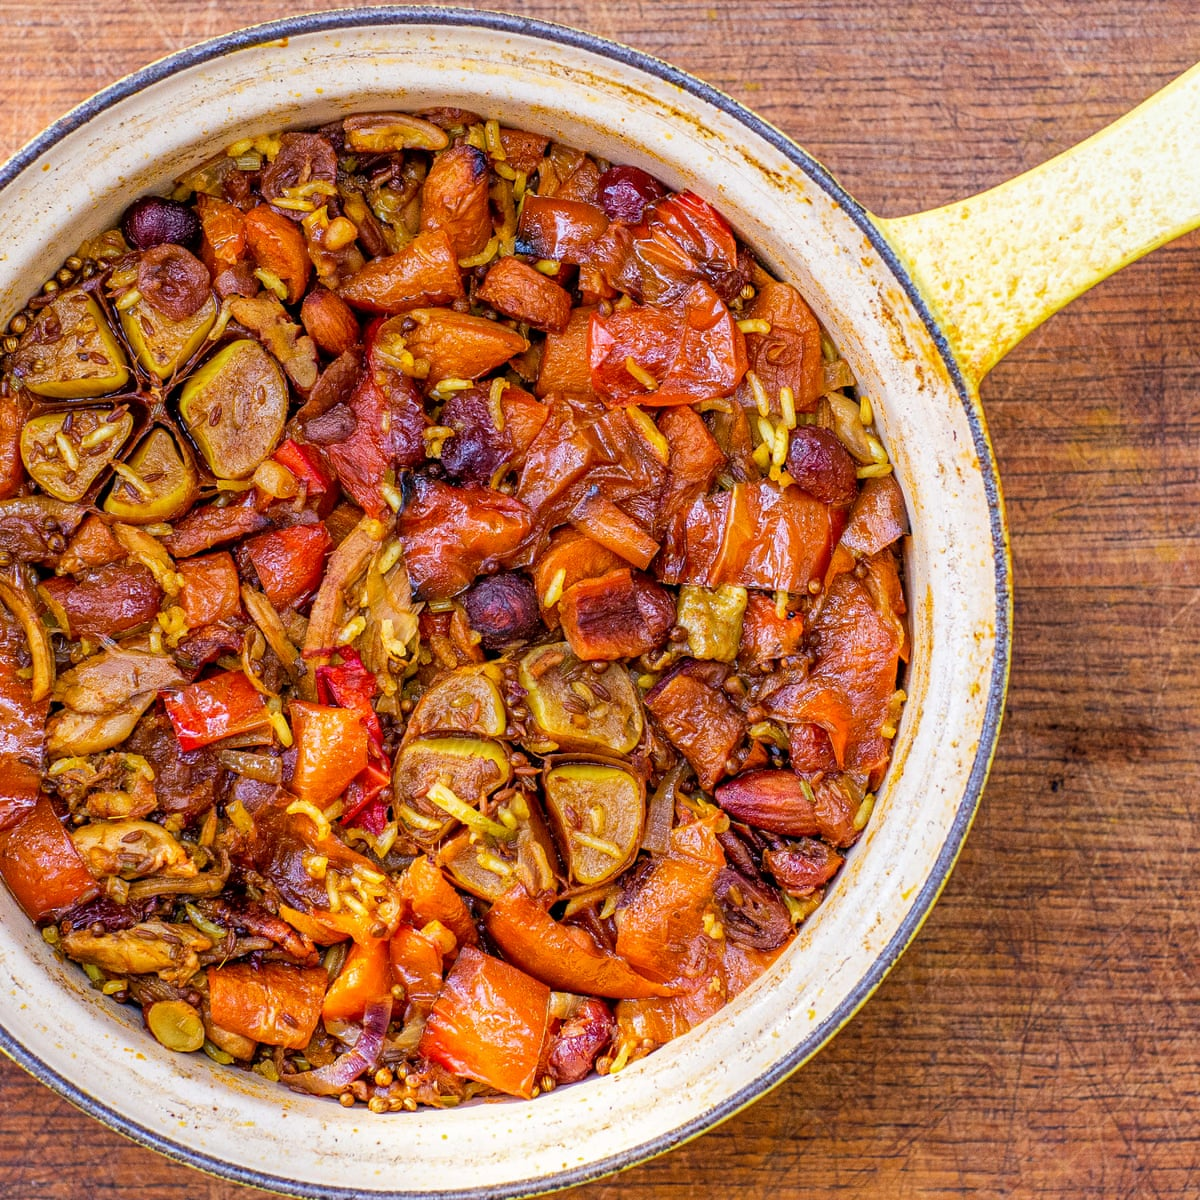 Tom Hunt S Christmas Recipe For Leftover Turkey Pilaf Christmas Food And Drink The Guardian